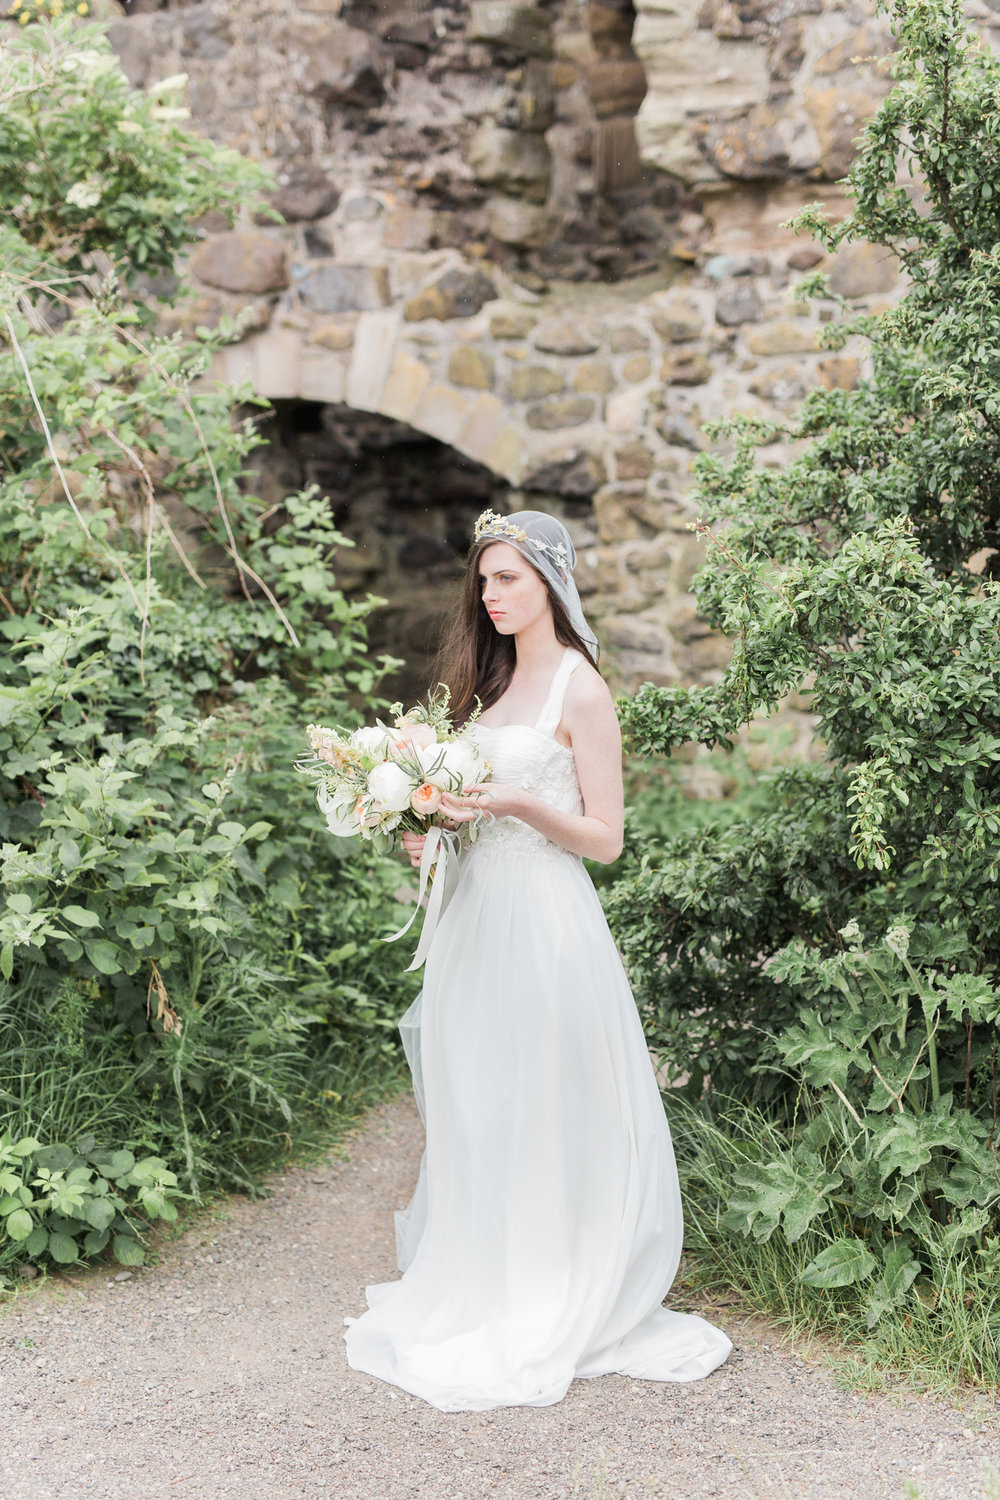 suzanne_li_photography_BRIDAL_SHOOT_SCOTLAND-11.jpg